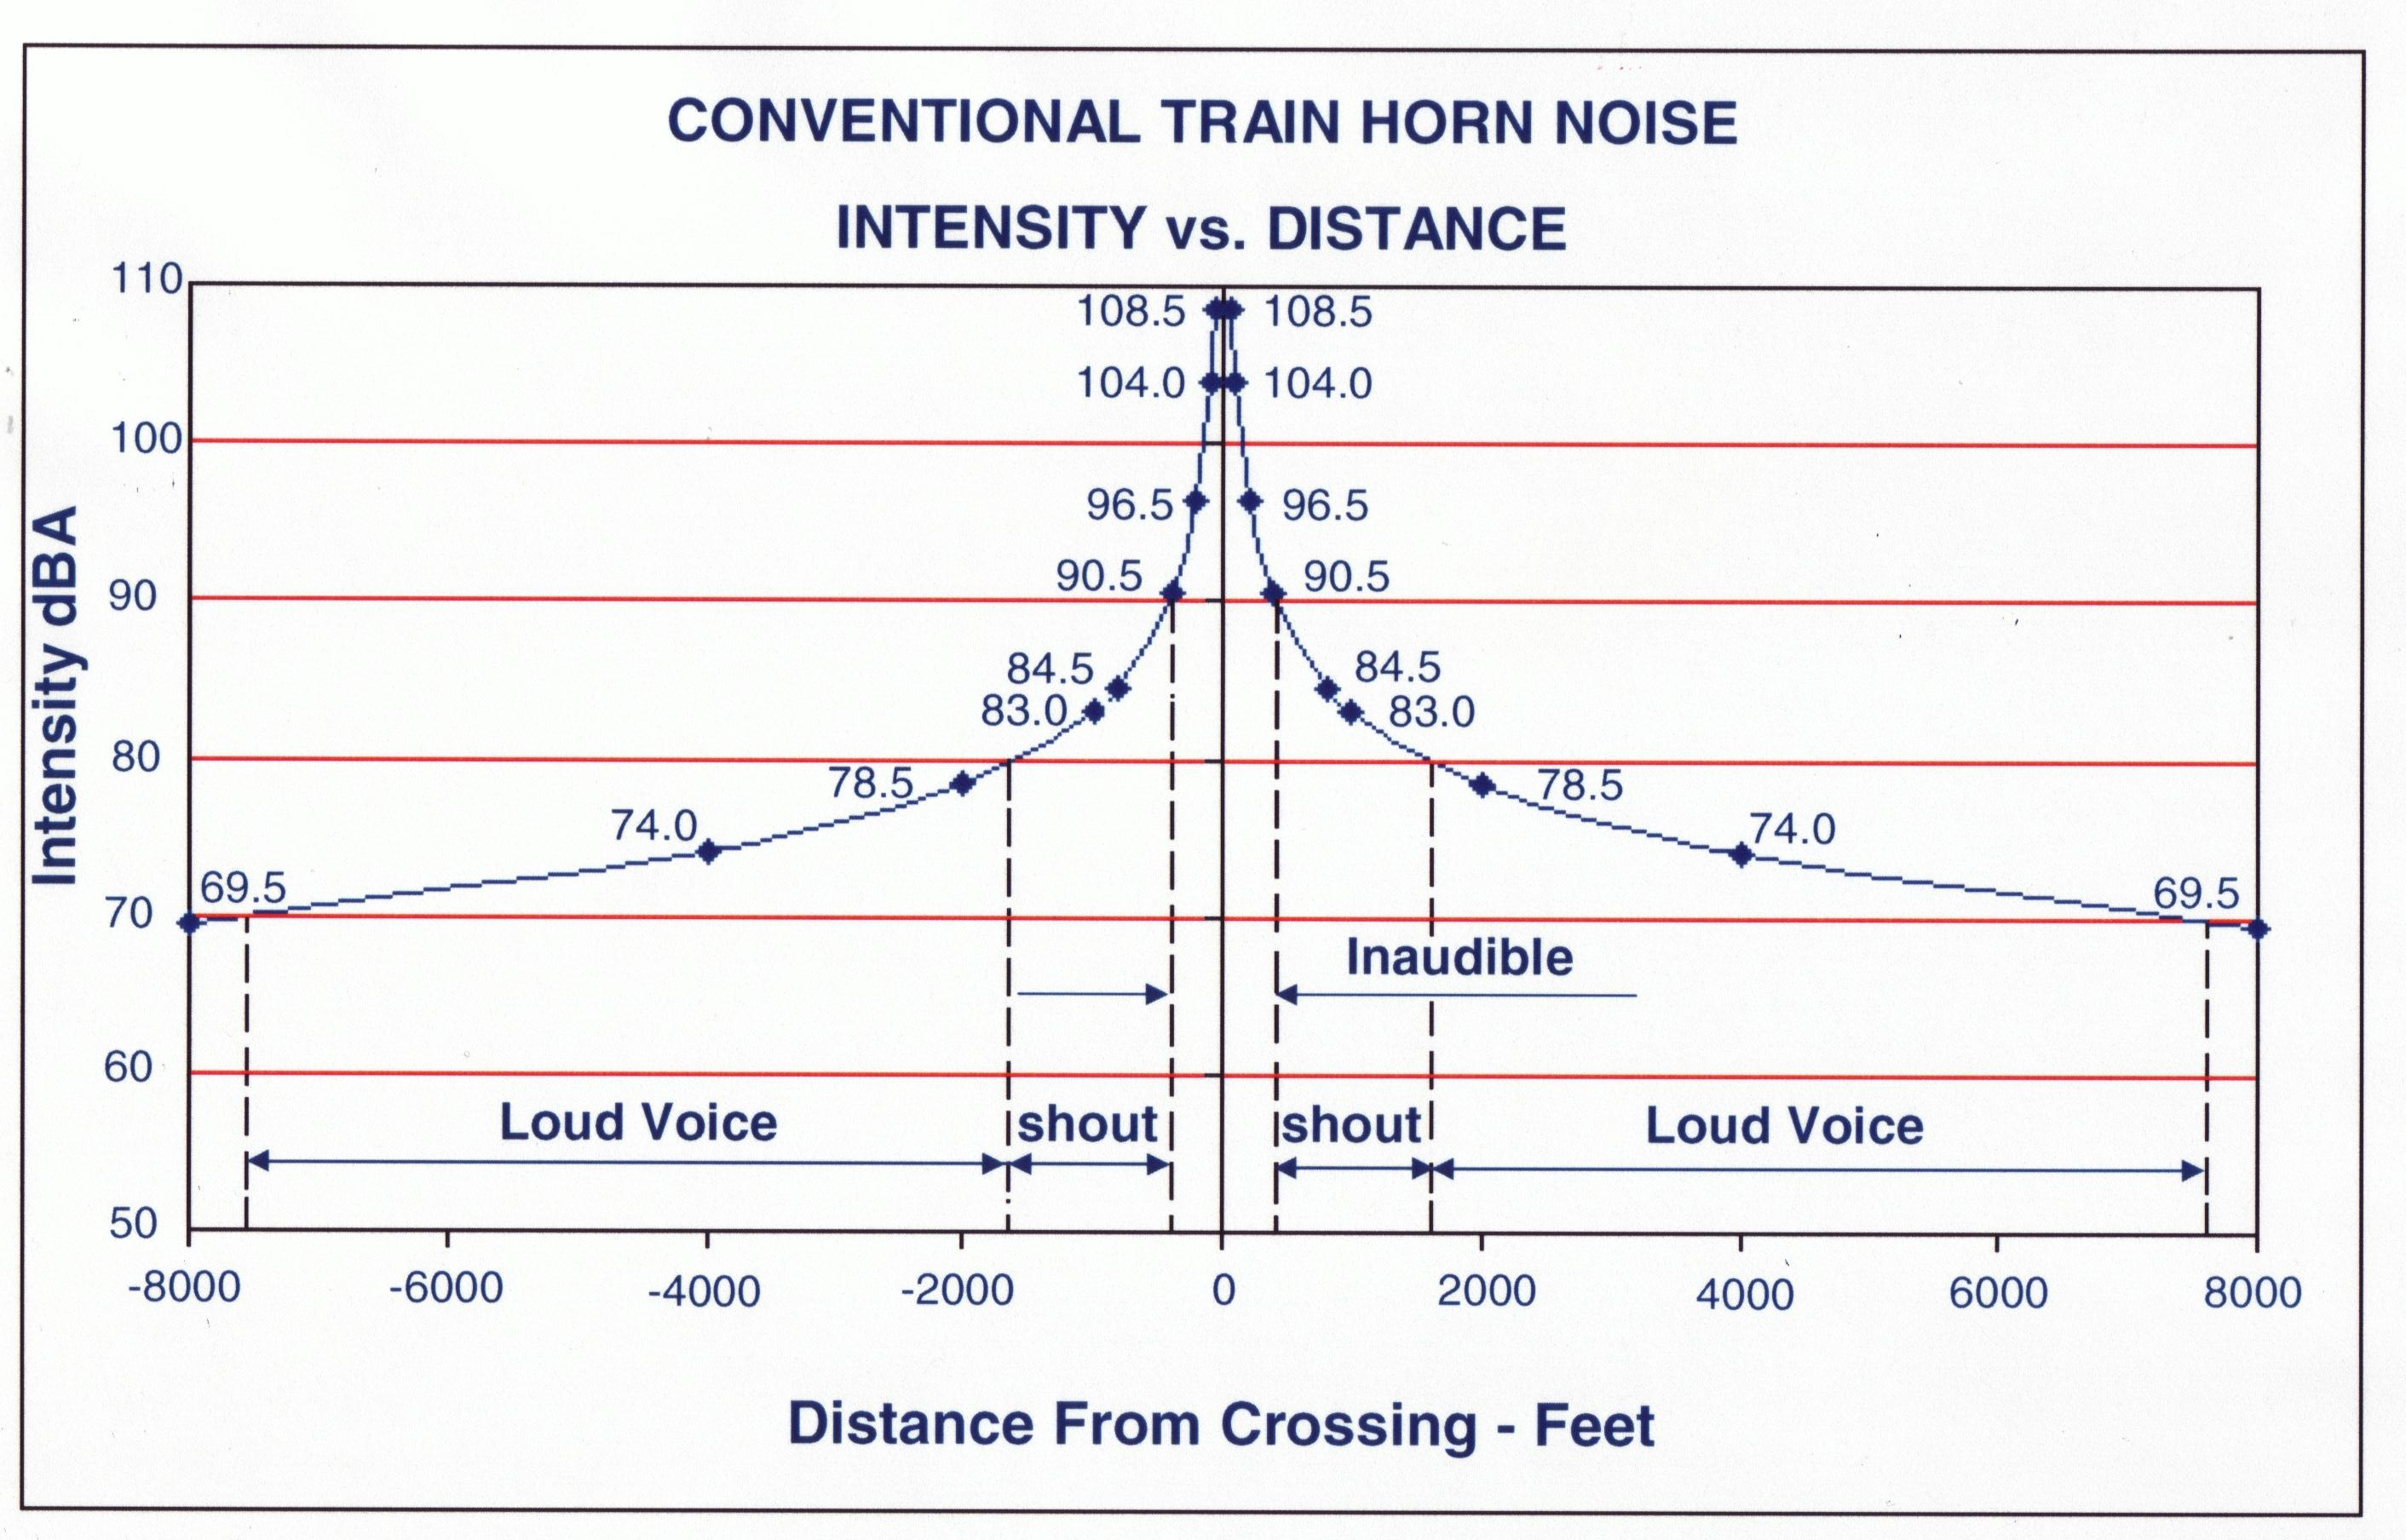 Model Railroad Flashing Light Circuit 1 Apwa Reporter Is Train Horn Noise A Problem In Your Town The Fra Has Modeled How Sound Propagates And Dissipates From Its Source States That